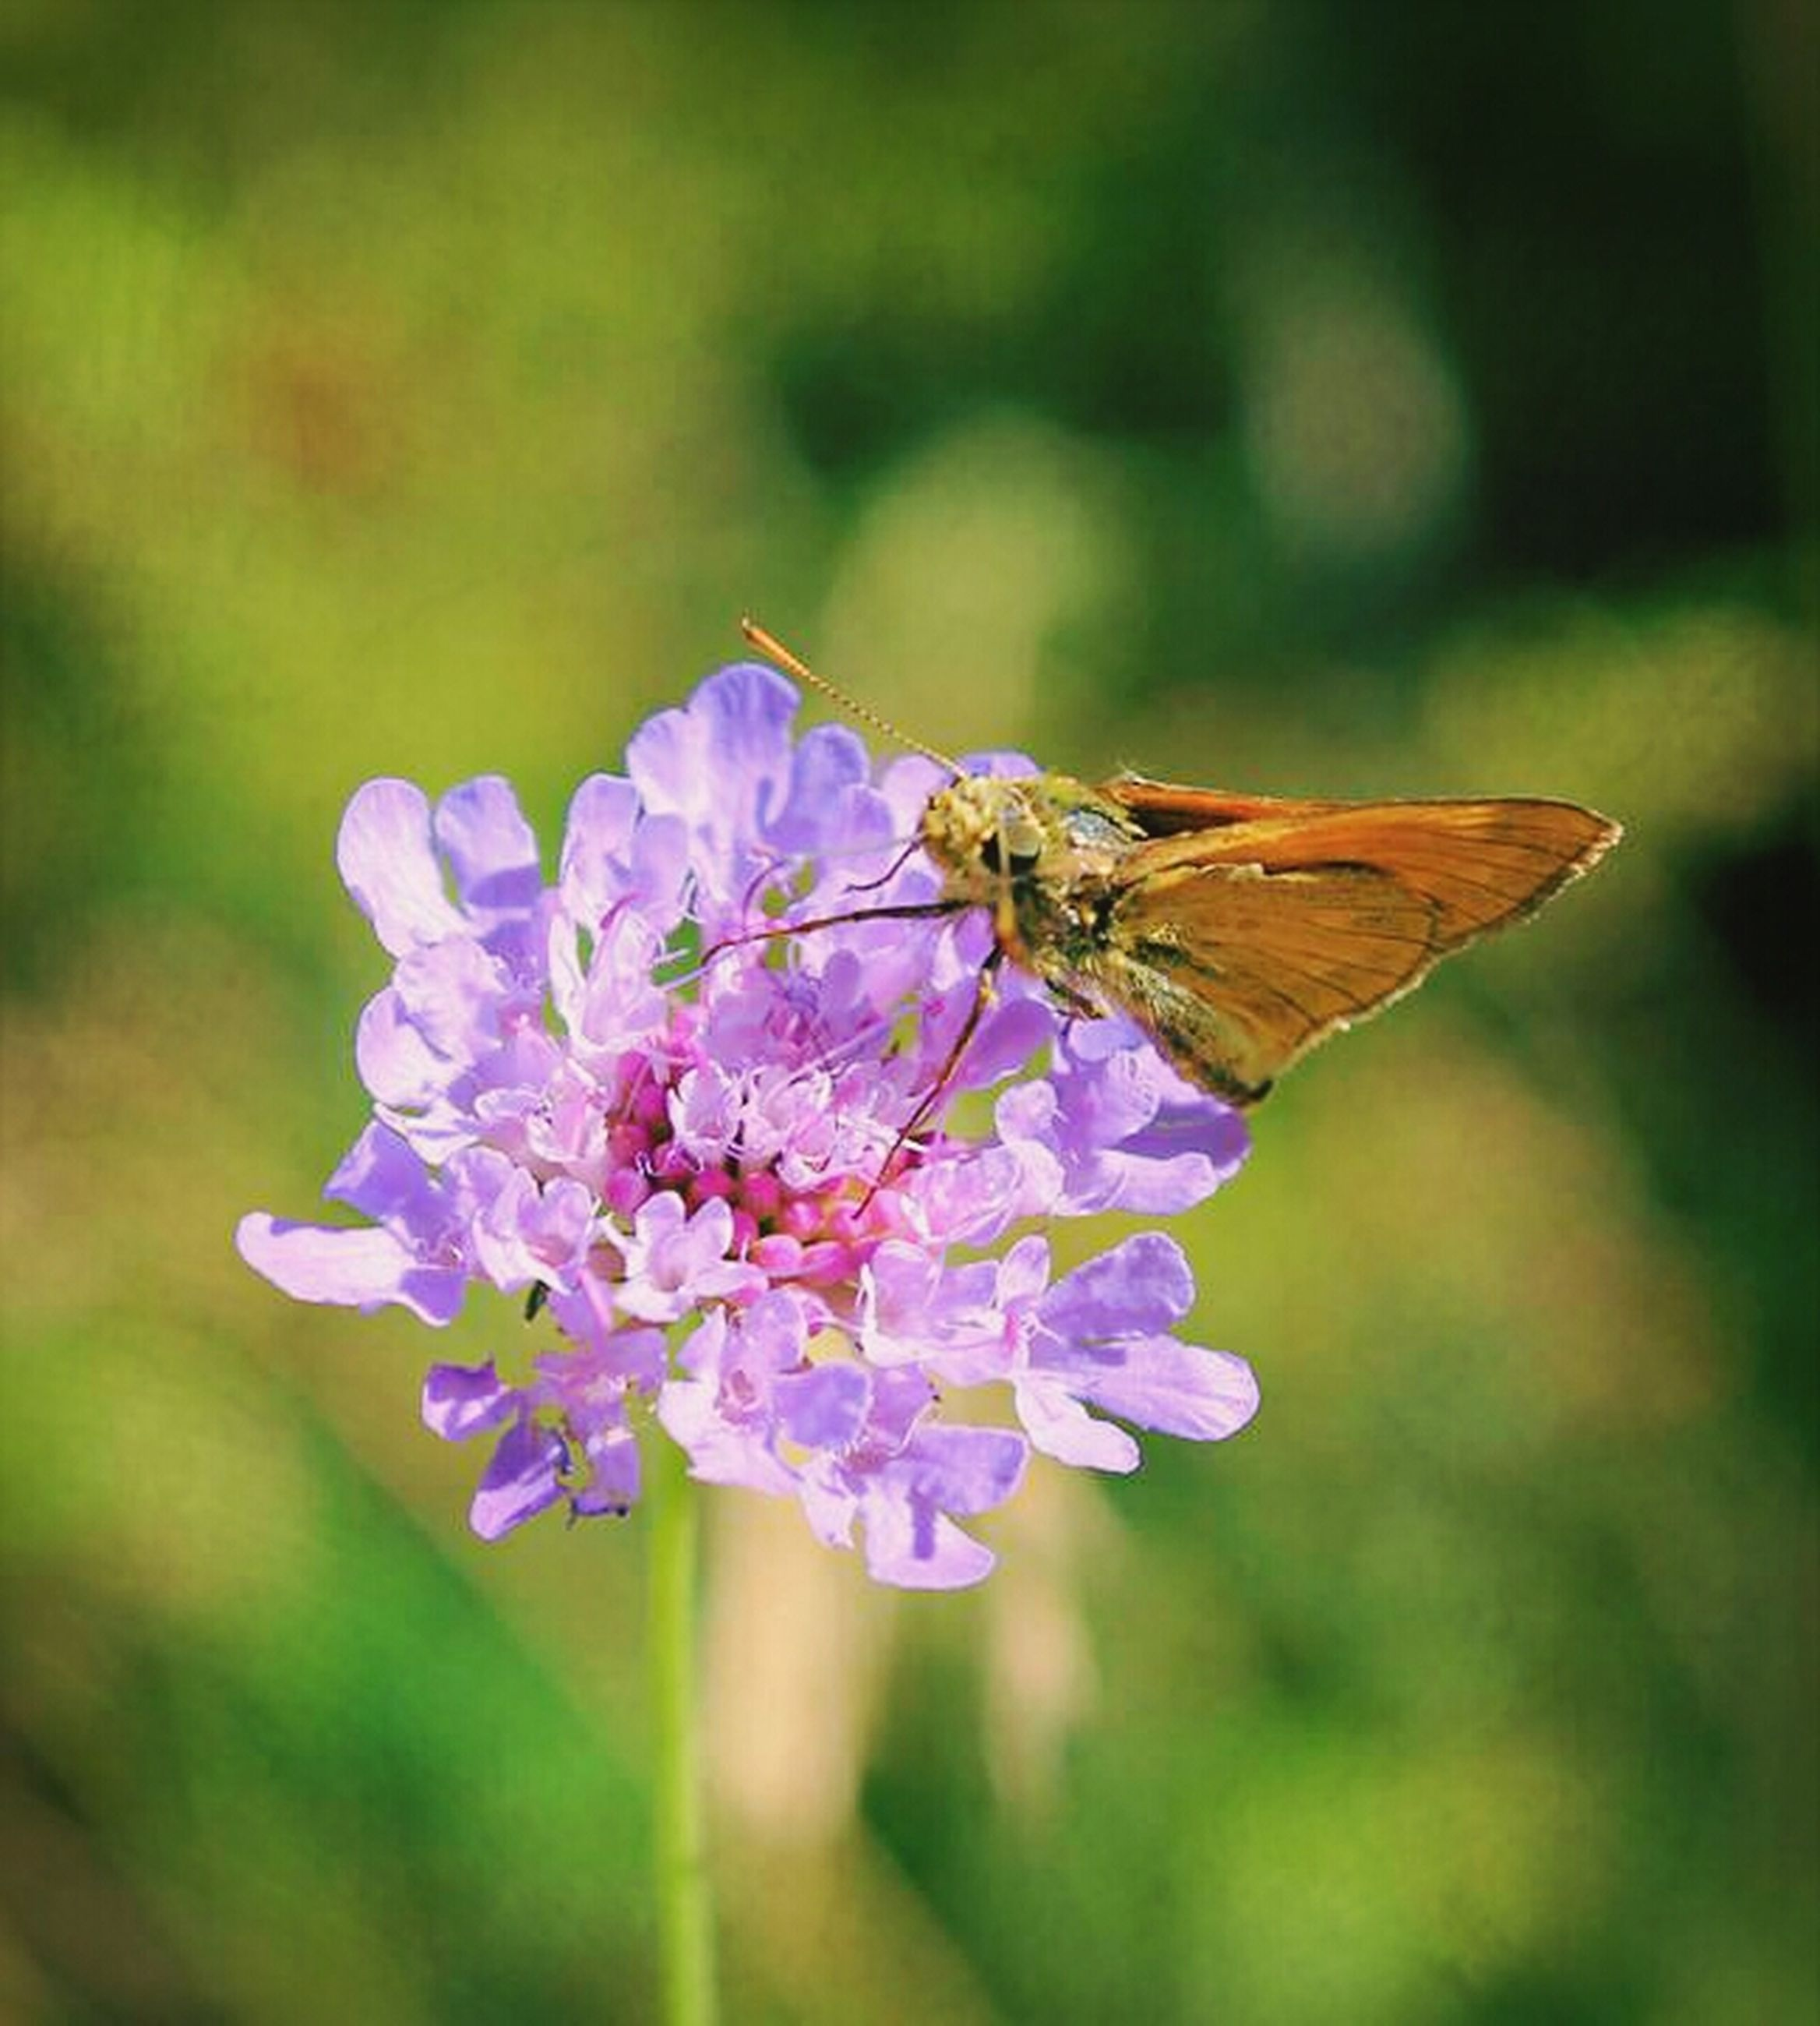 flower, insect, one animal, animal themes, animals in the wild, wildlife, fragility, freshness, pollination, focus on foreground, beauty in nature, petal, close-up, butterfly, butterfly - insect, purple, growth, nature, symbiotic relationship, flower head